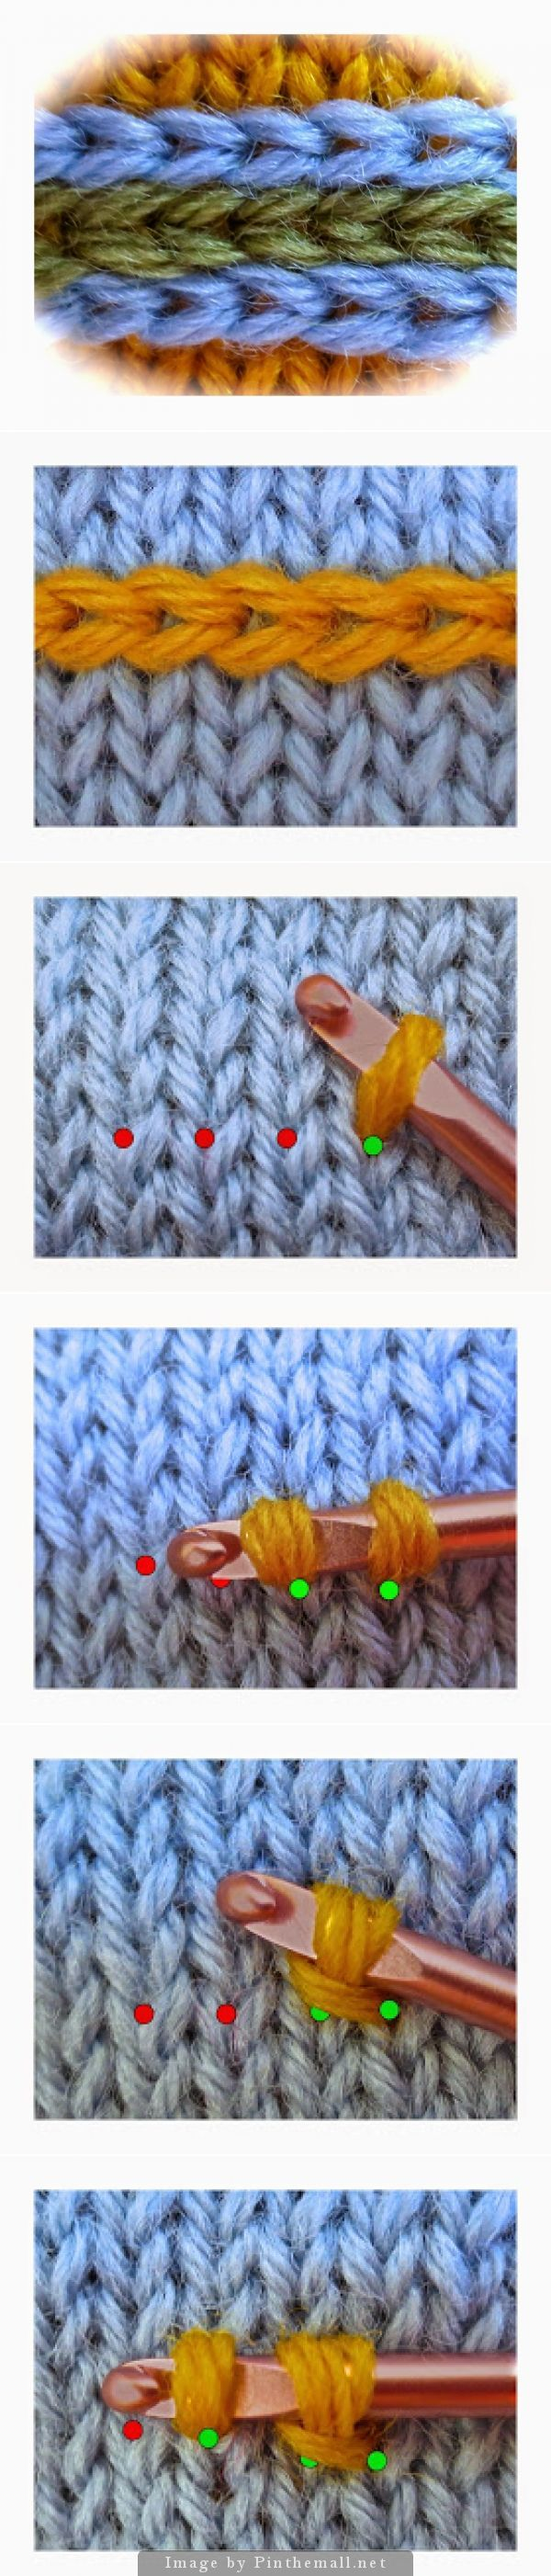 """#Knitting/Crochet_Stitches - """"This decoration for knitted projects looks like #Latvian_Knitting, but is really just crocheted slip stitches made into a knitted foundation. It's really easy to do and is a very effective way to add design interest to your knitting."""" Enjoy your knitting and crochet from #KnittingGuru"""